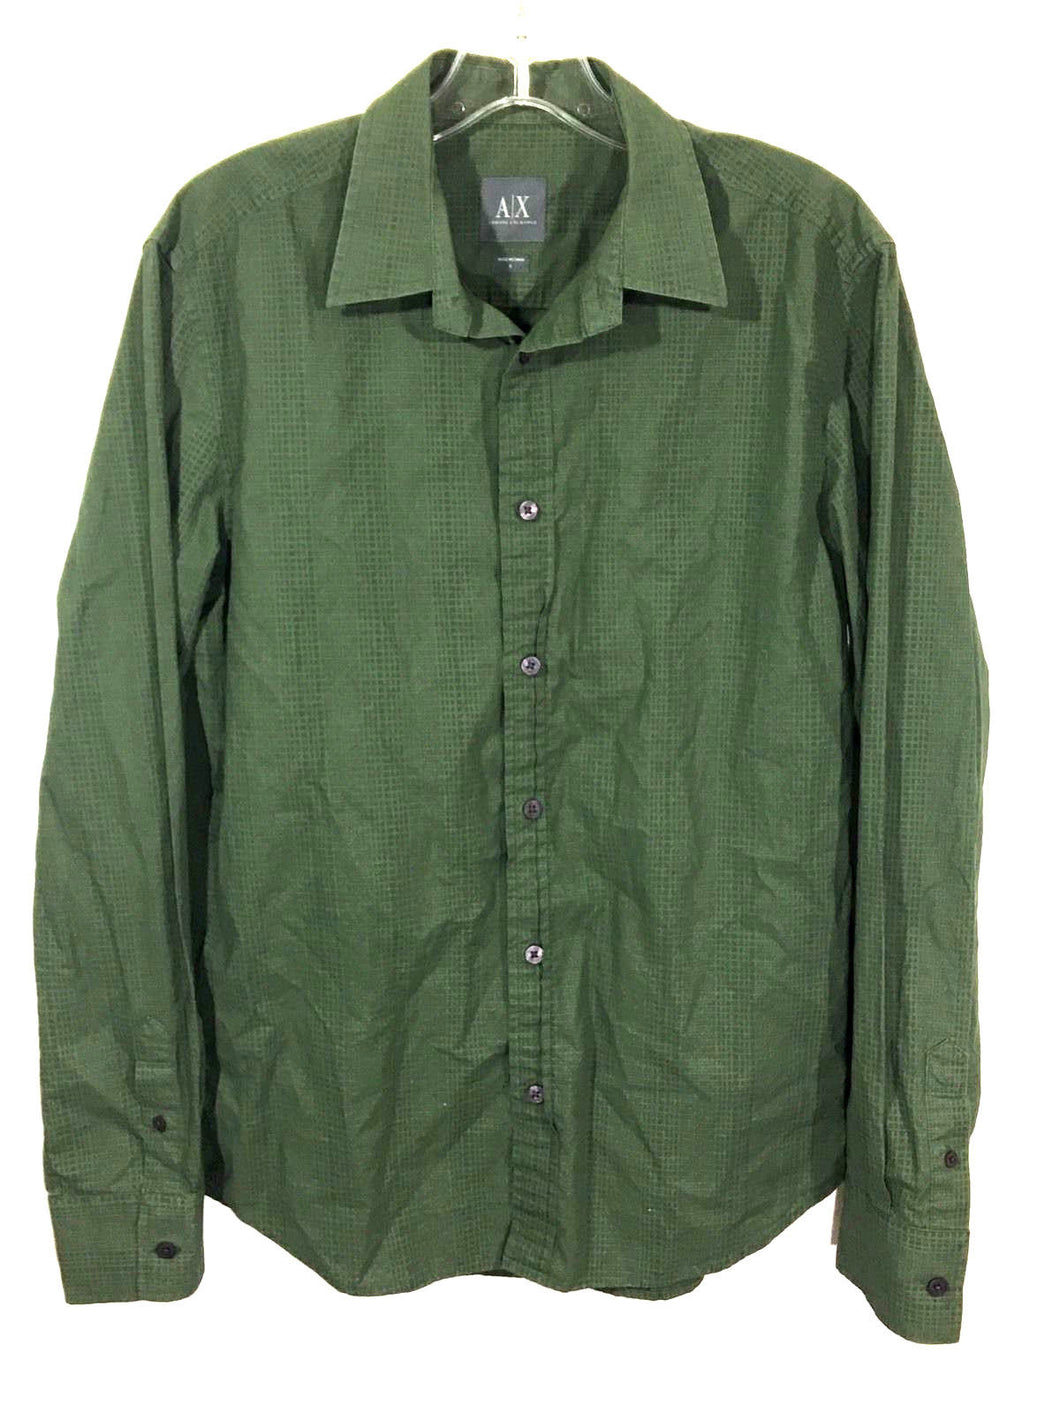 Armani Exchange AX Green Square Geometric Button Down Shirt Green Mens Small S - Preowned - FunkyCrap Boutique